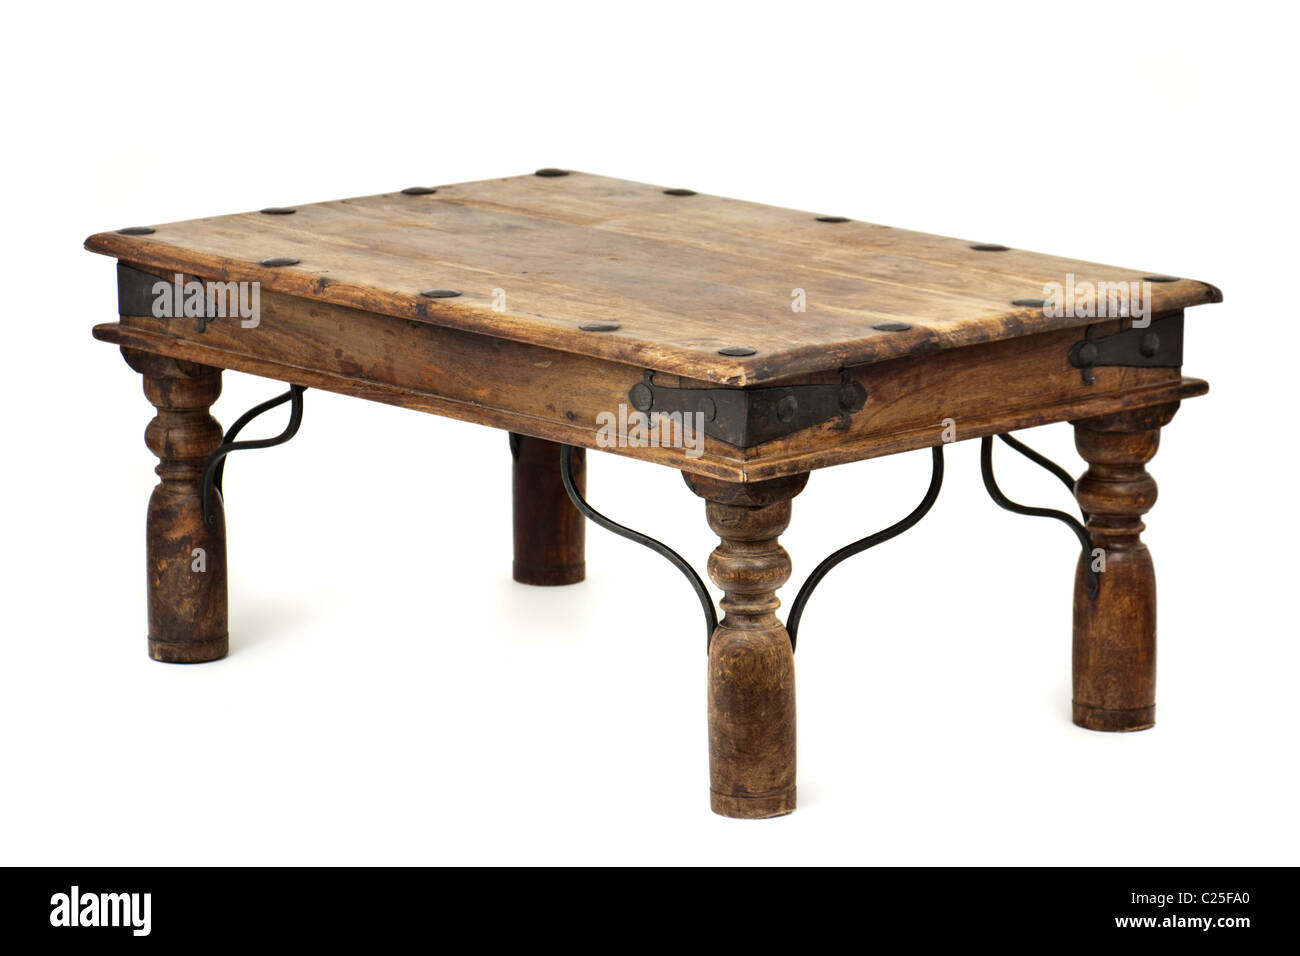 Spanish wooden coffee table - Stock Image